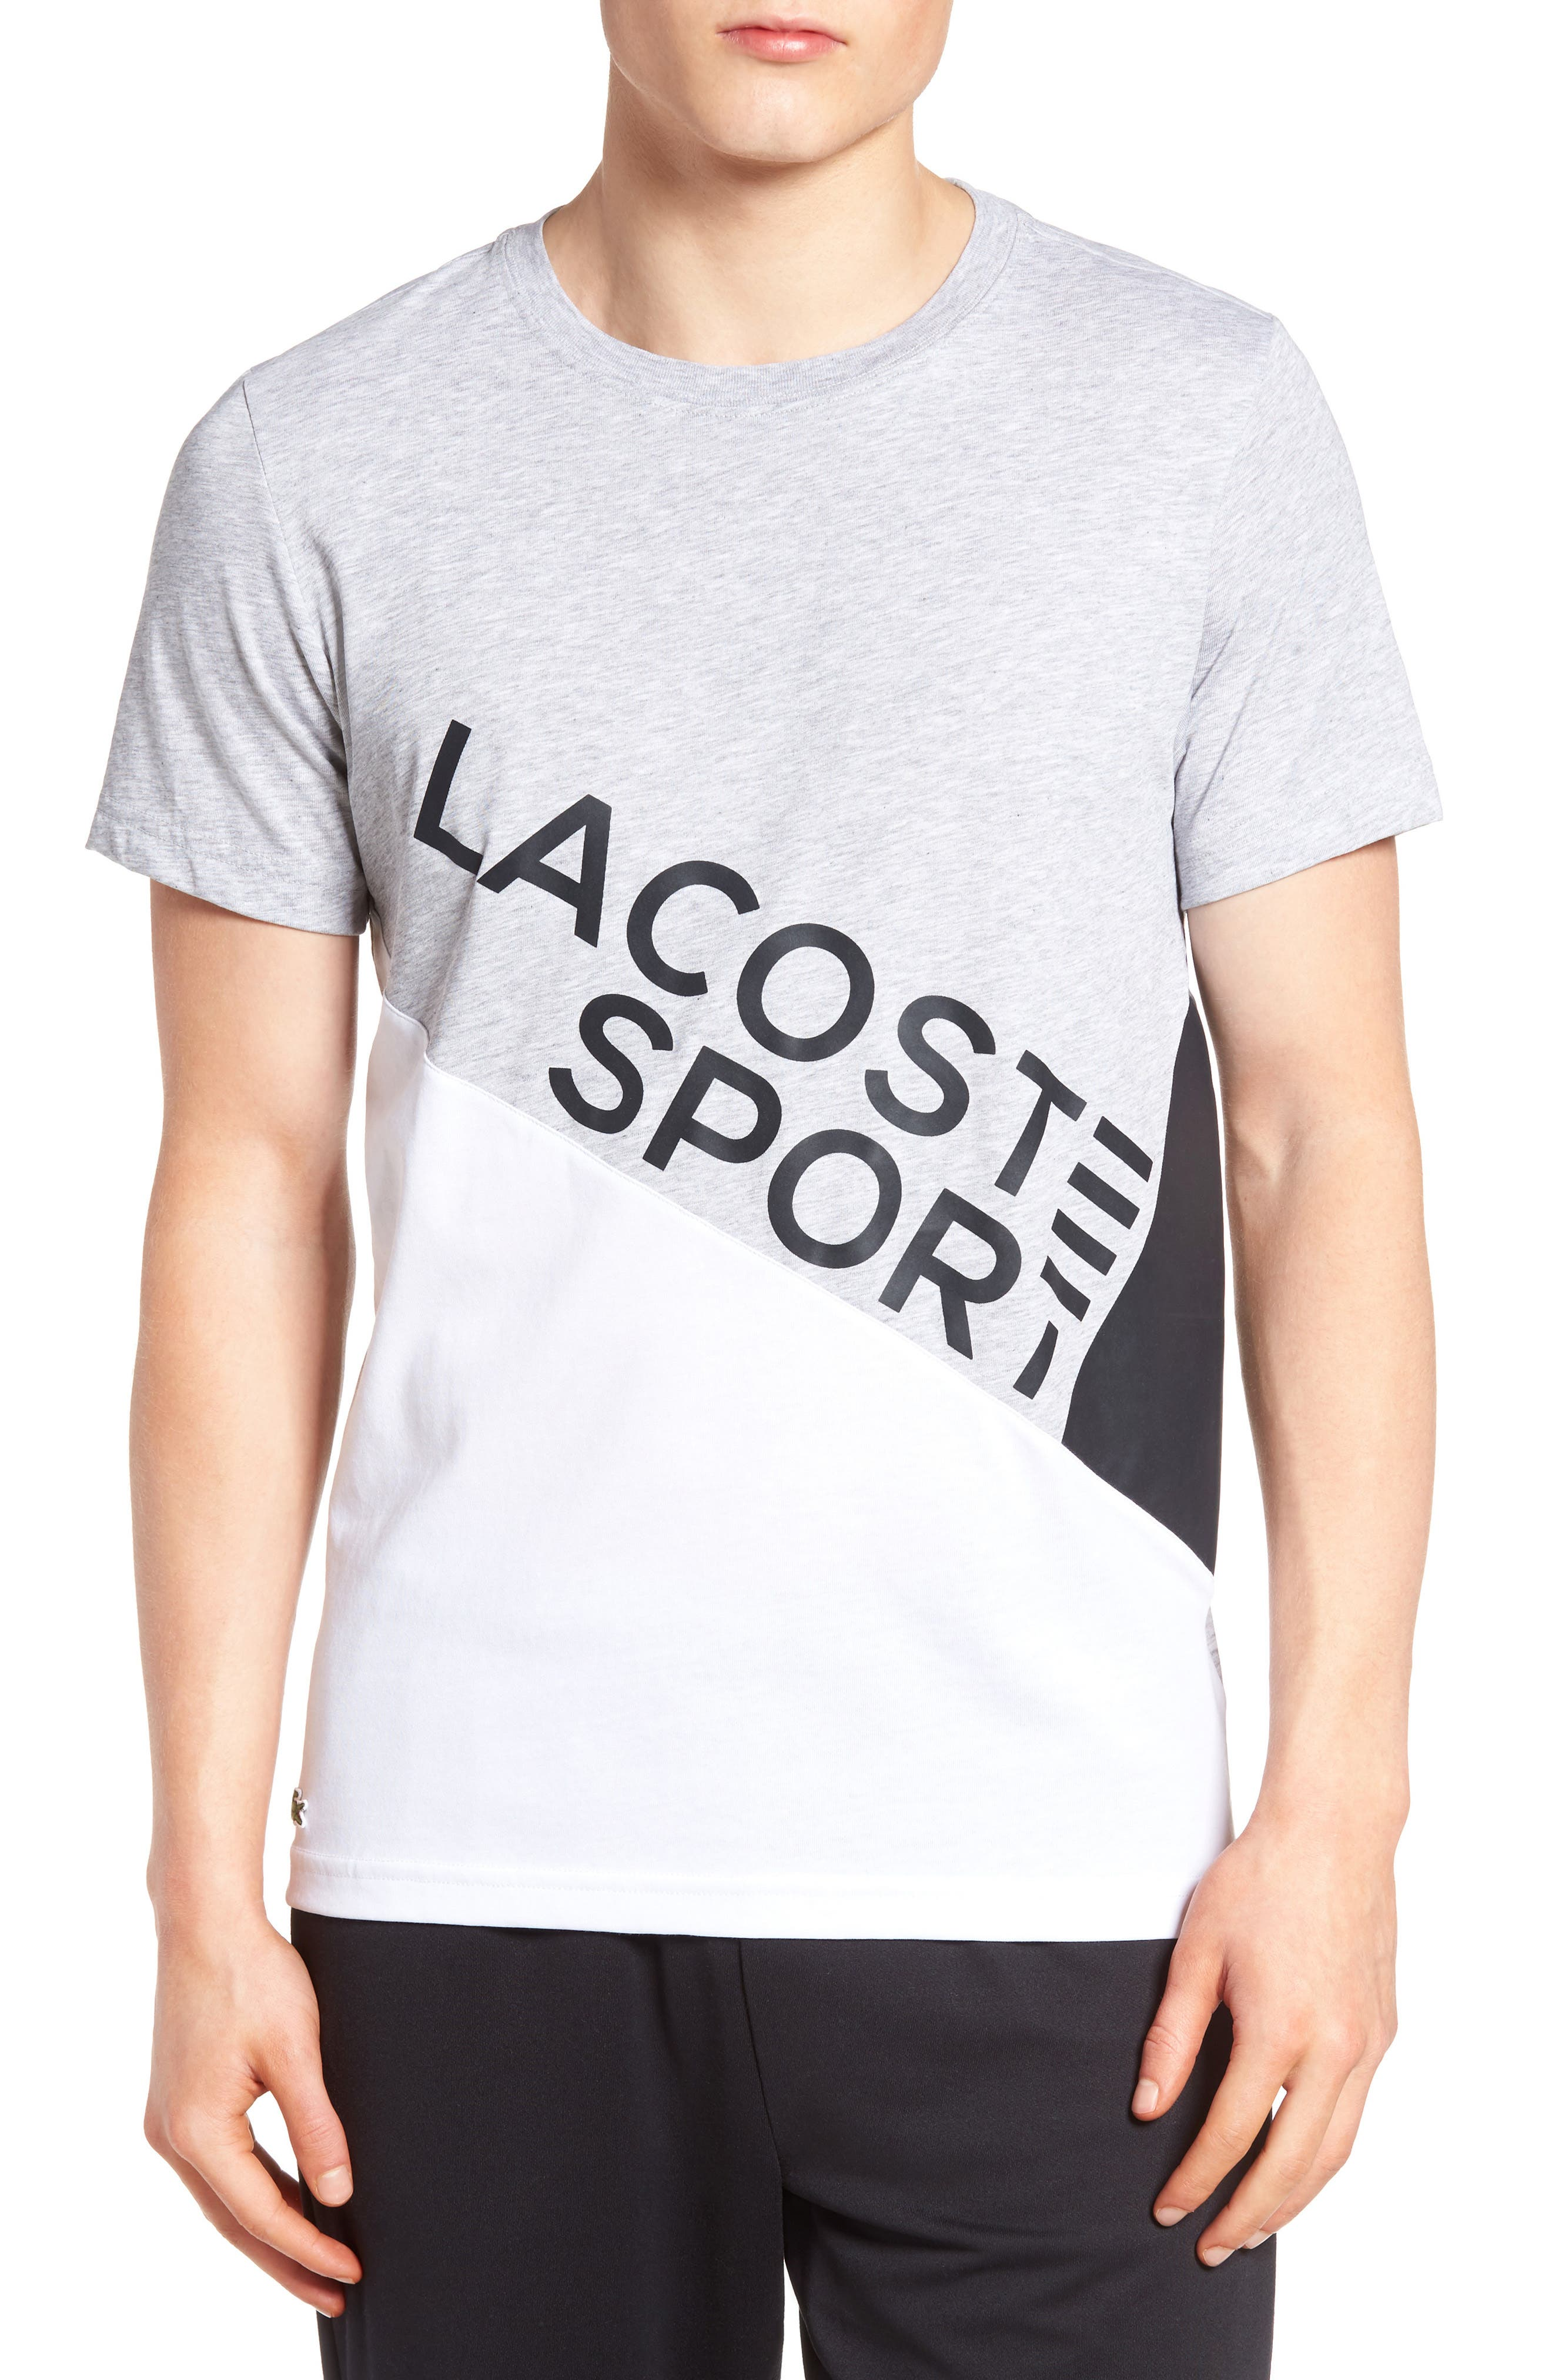 Lifestyle Sport Graphic T-Shirt,                             Main thumbnail 1, color,                             021